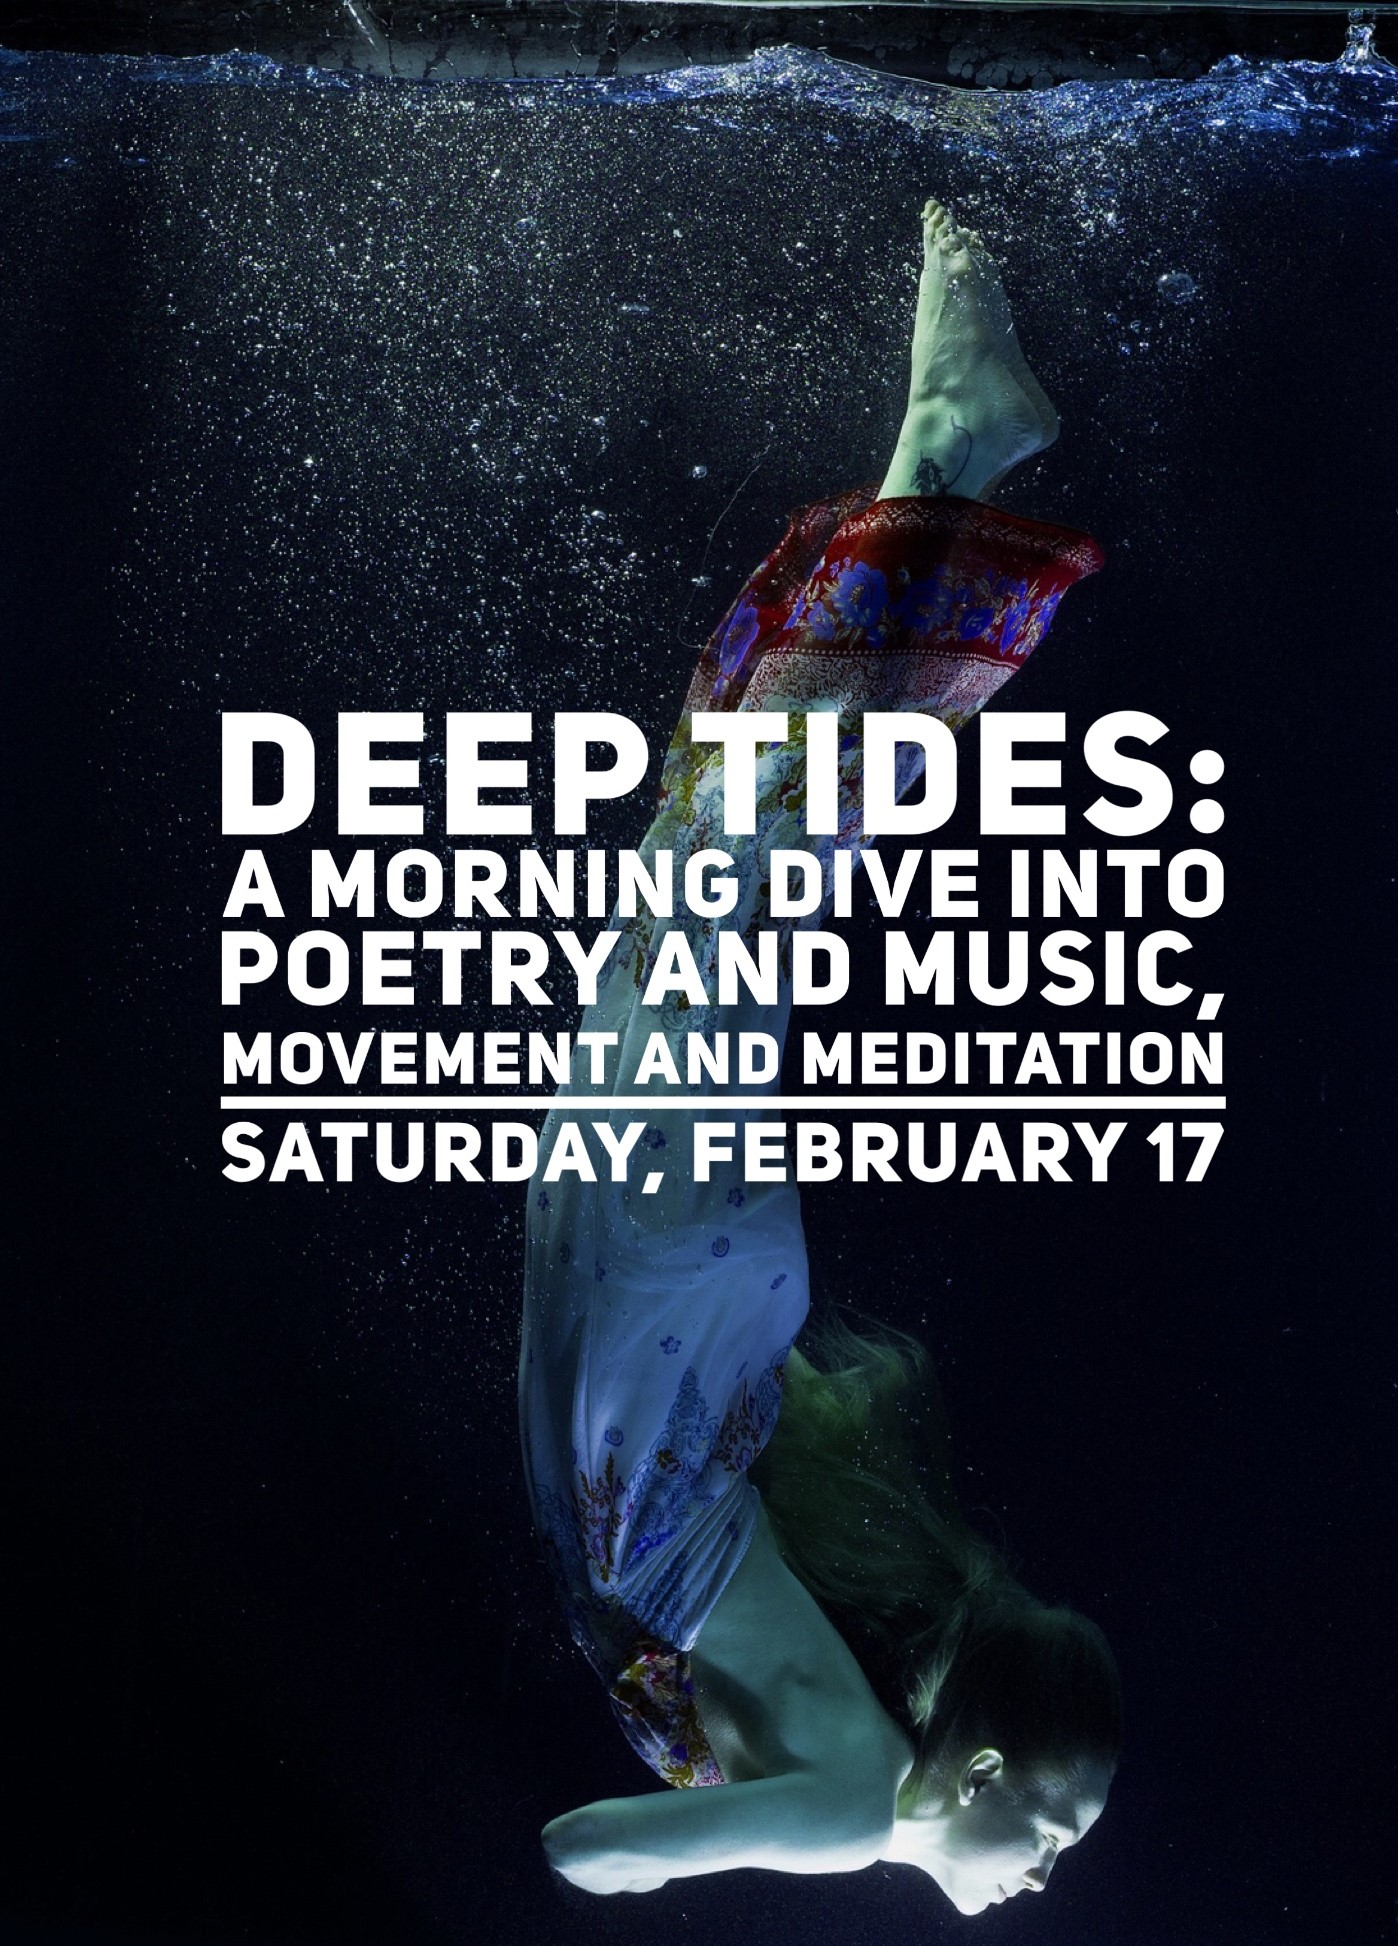 Deep Tides: a morning dive into poetry and music, movement and meditation